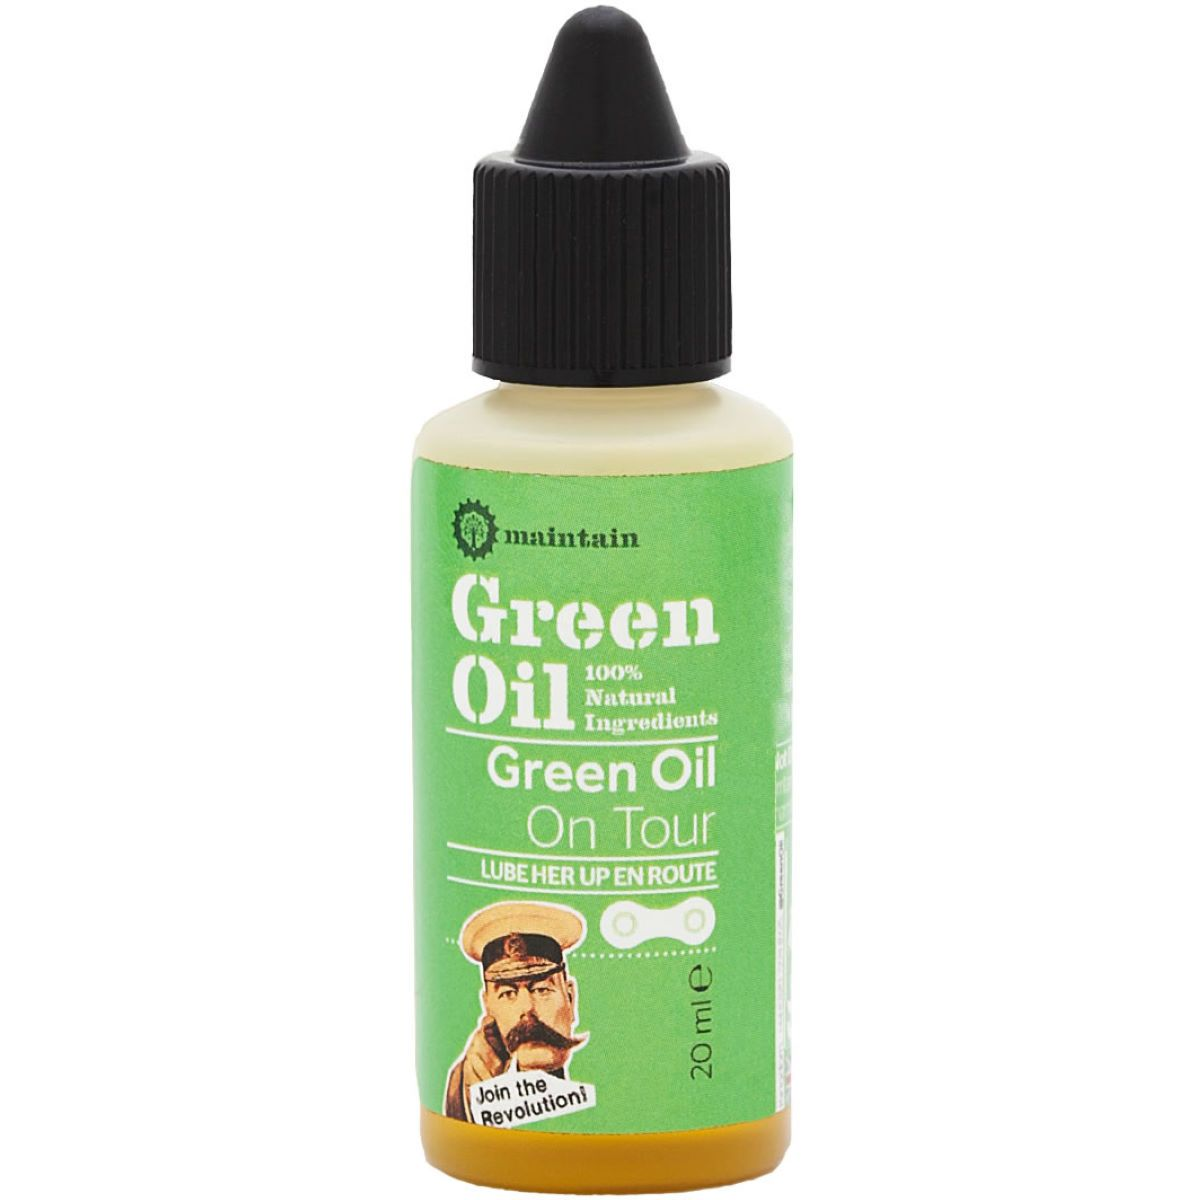 Green Oil CL.jpg